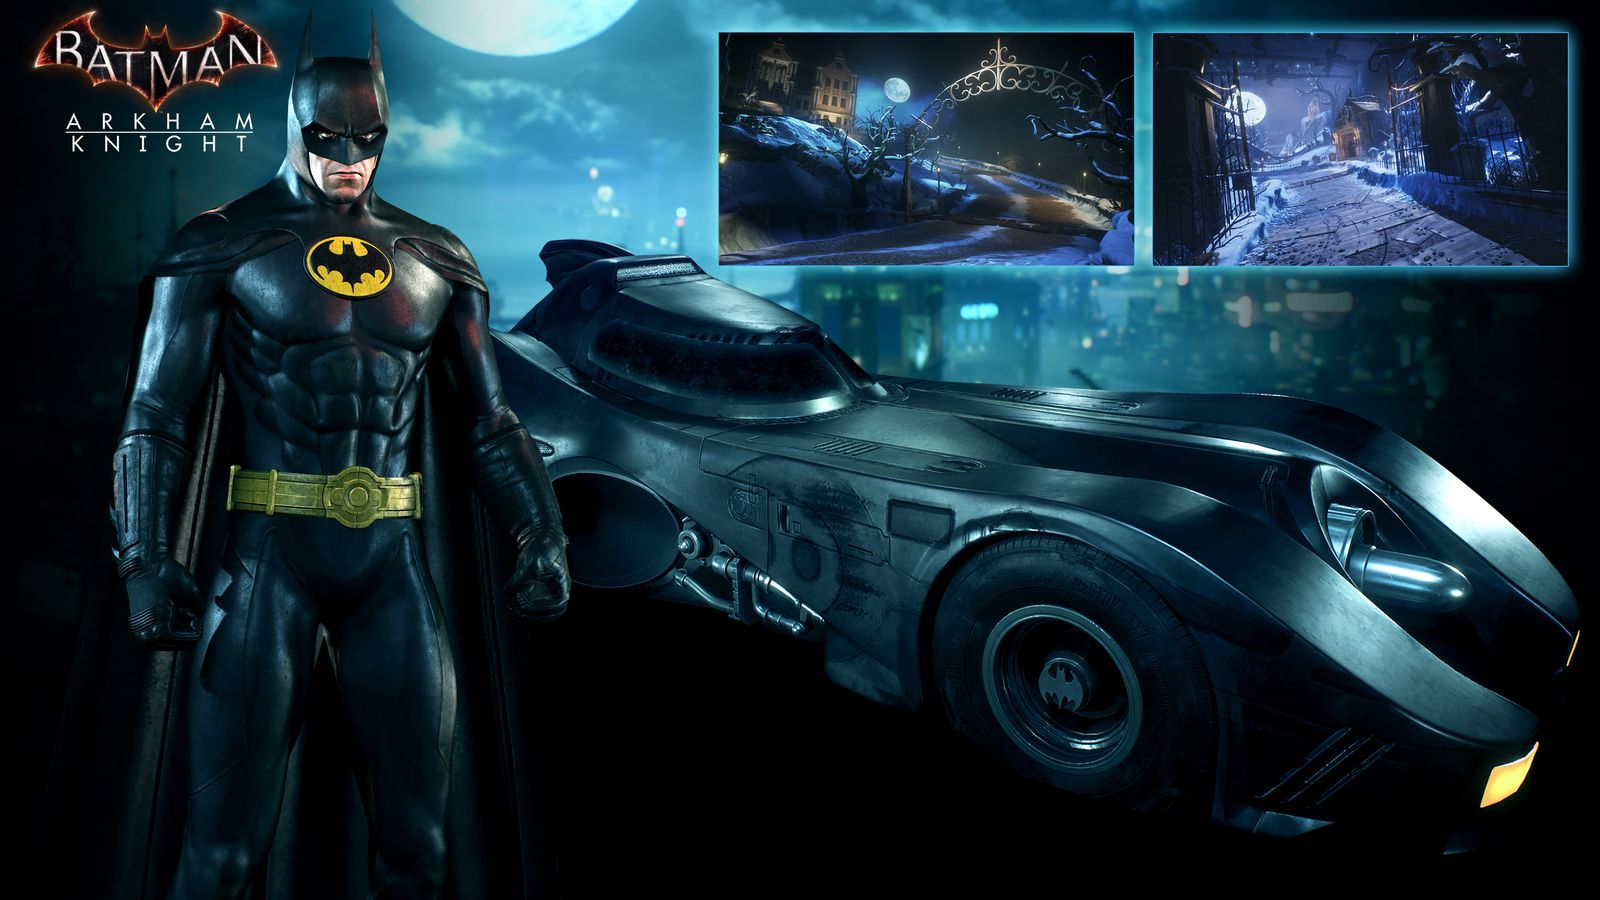 Michael Keatons 1989 Costume And Batmobile Are Coming To